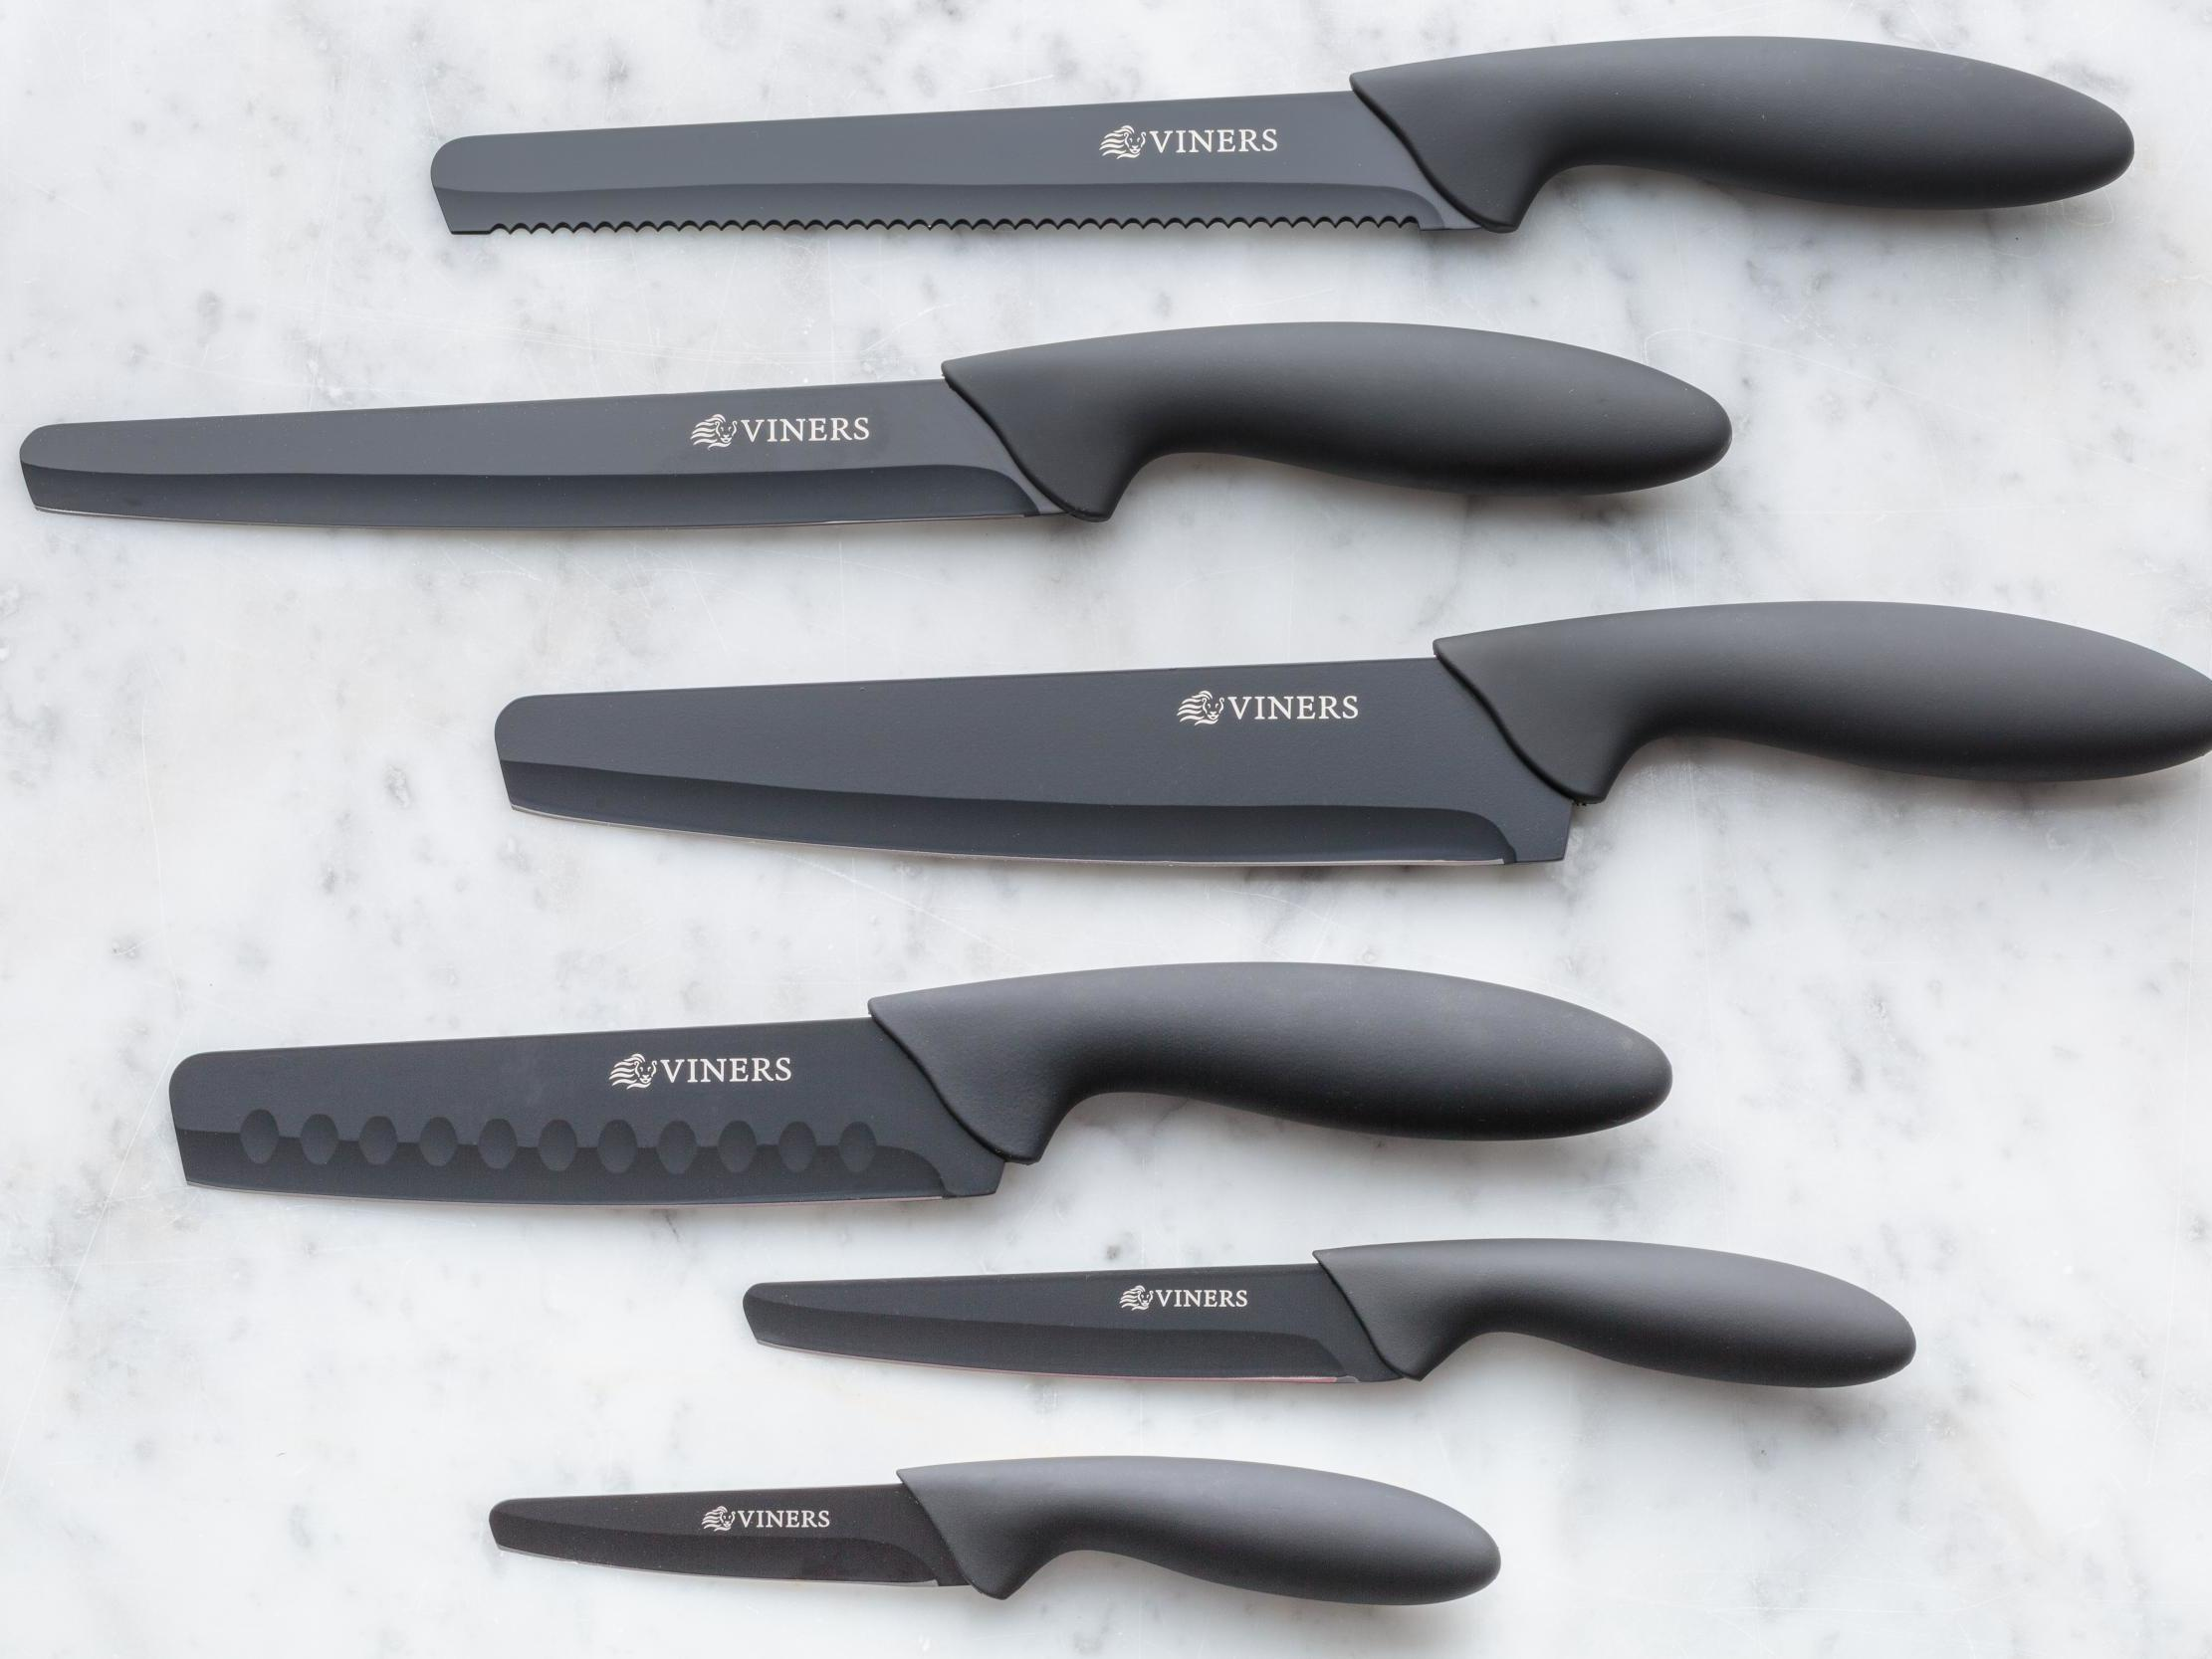 Cutlery company creates knives with square tips 'in response to rising knife crime'